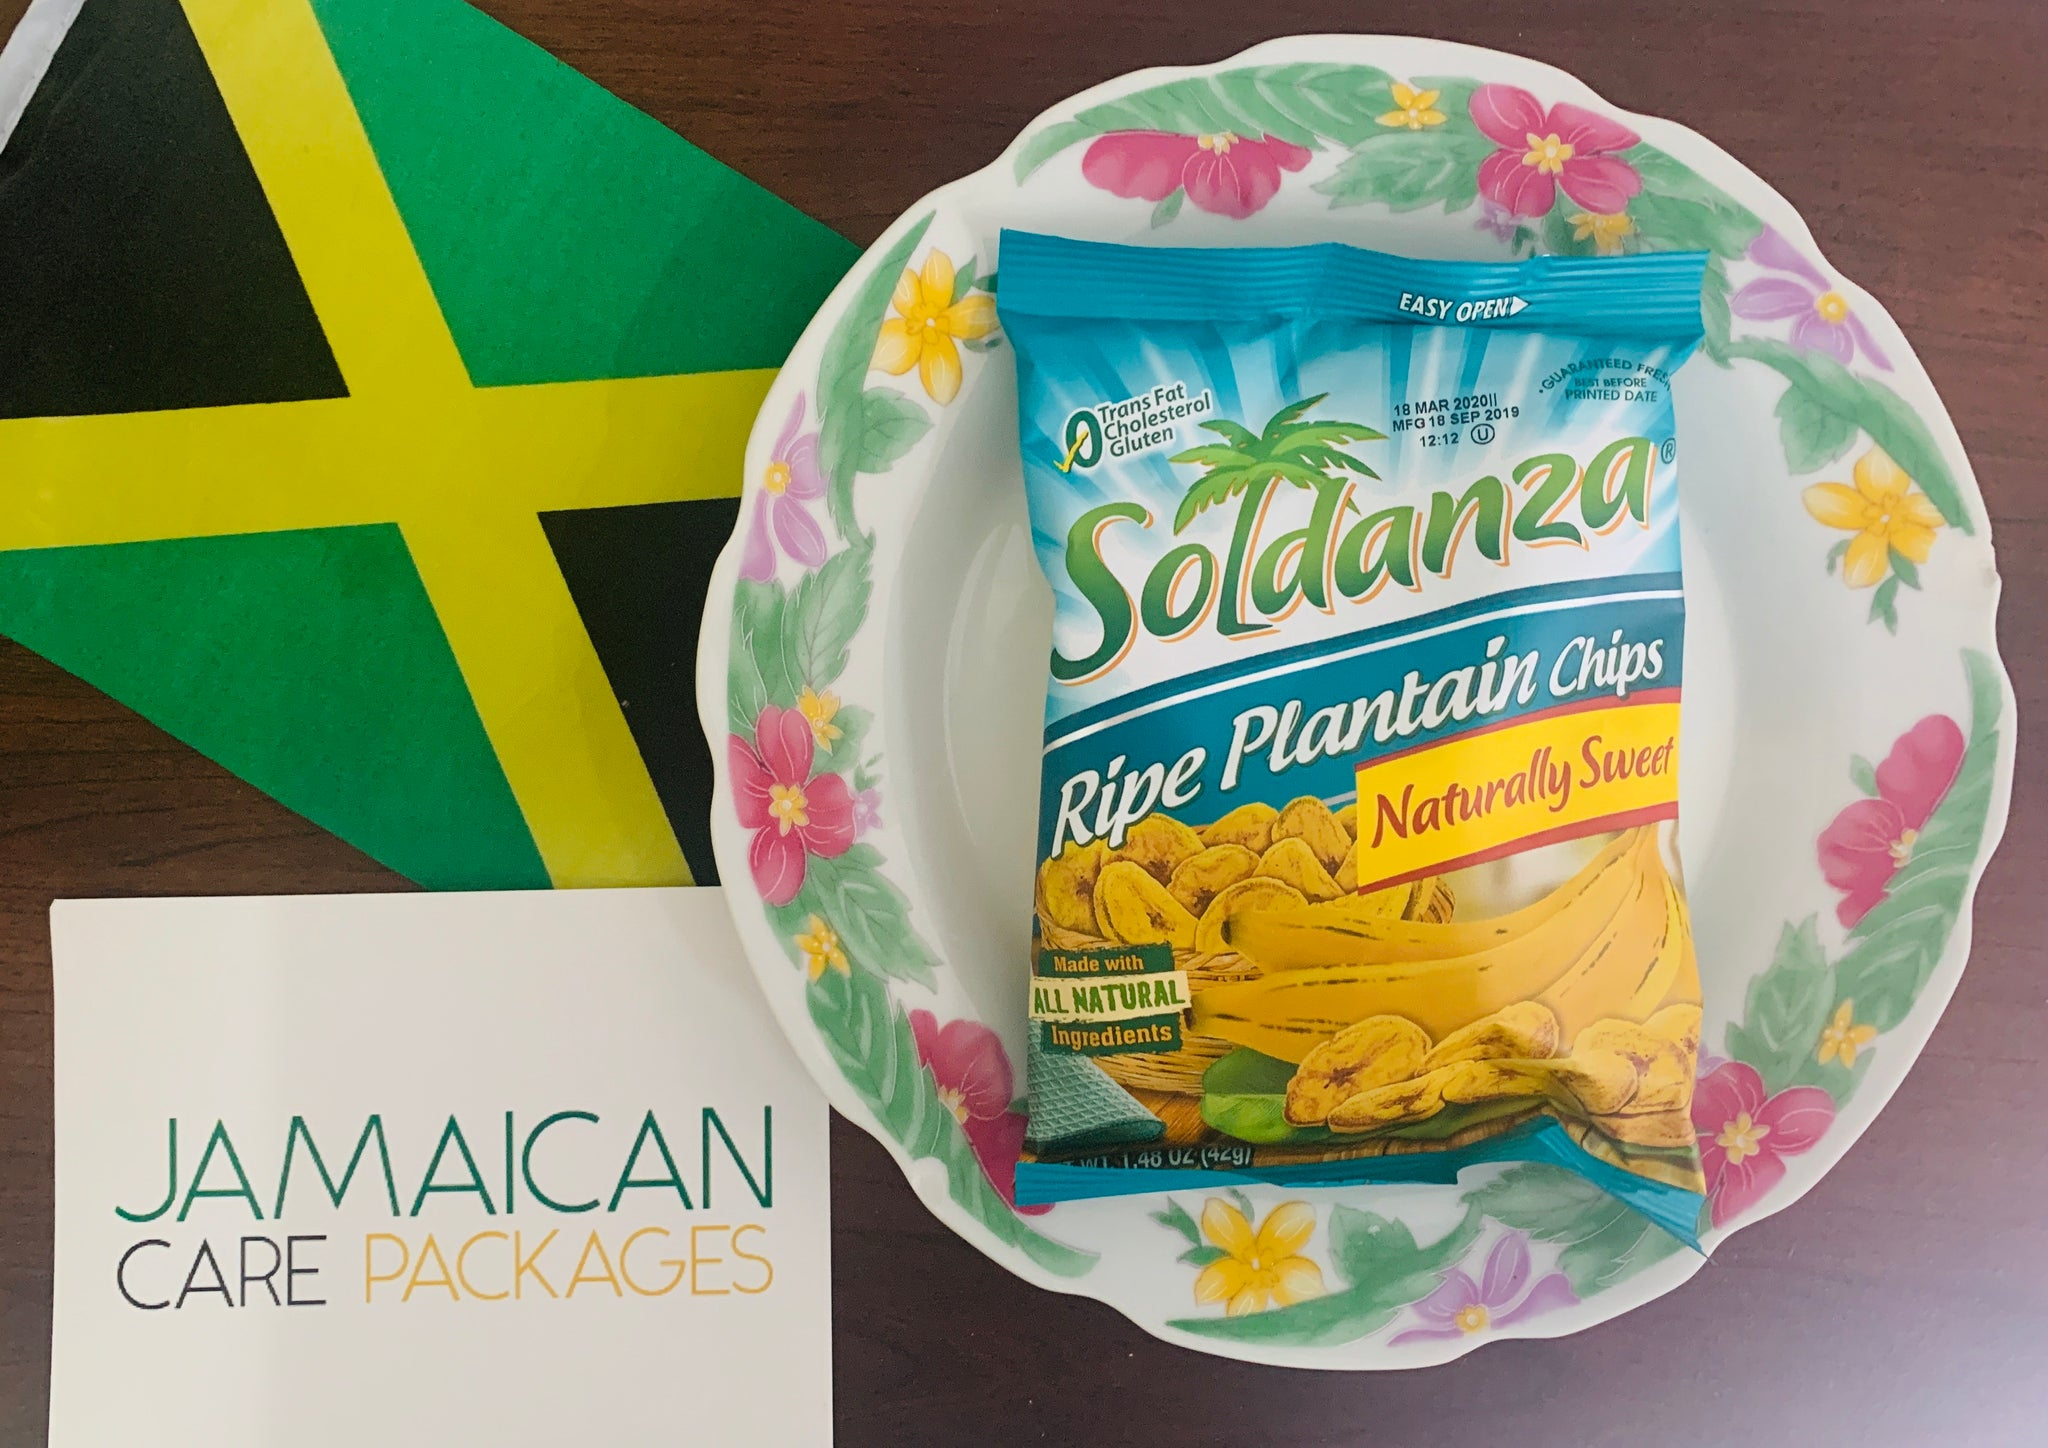 Soldanza Ripe Plantain Chips (Bundle of 2)